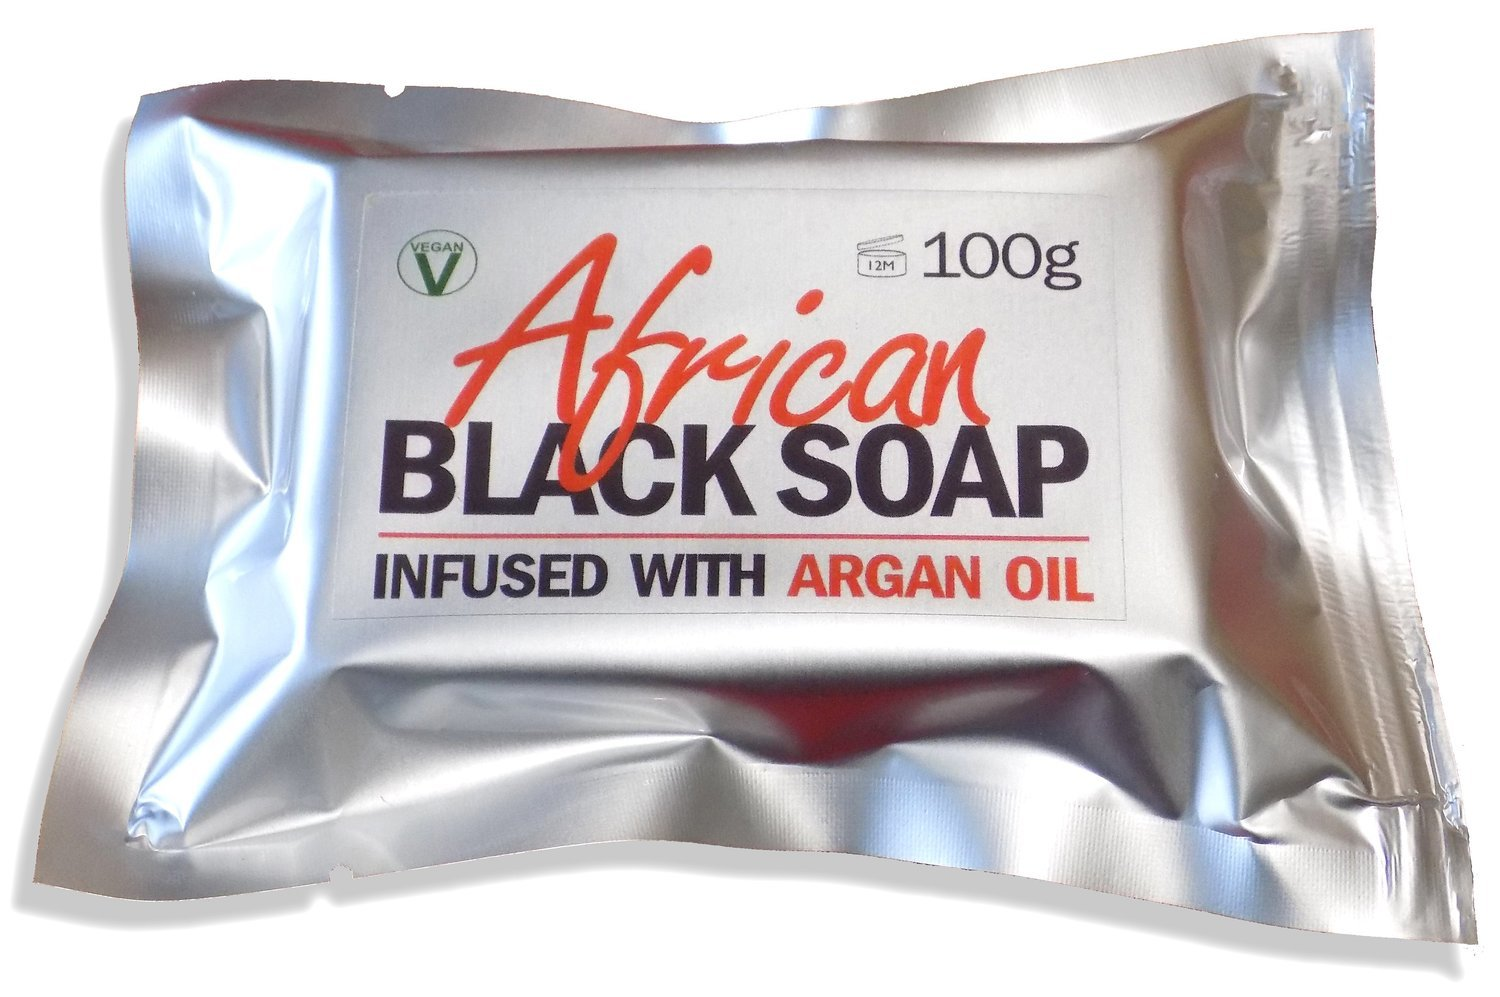 African Black Soap Infused With Argan Oil